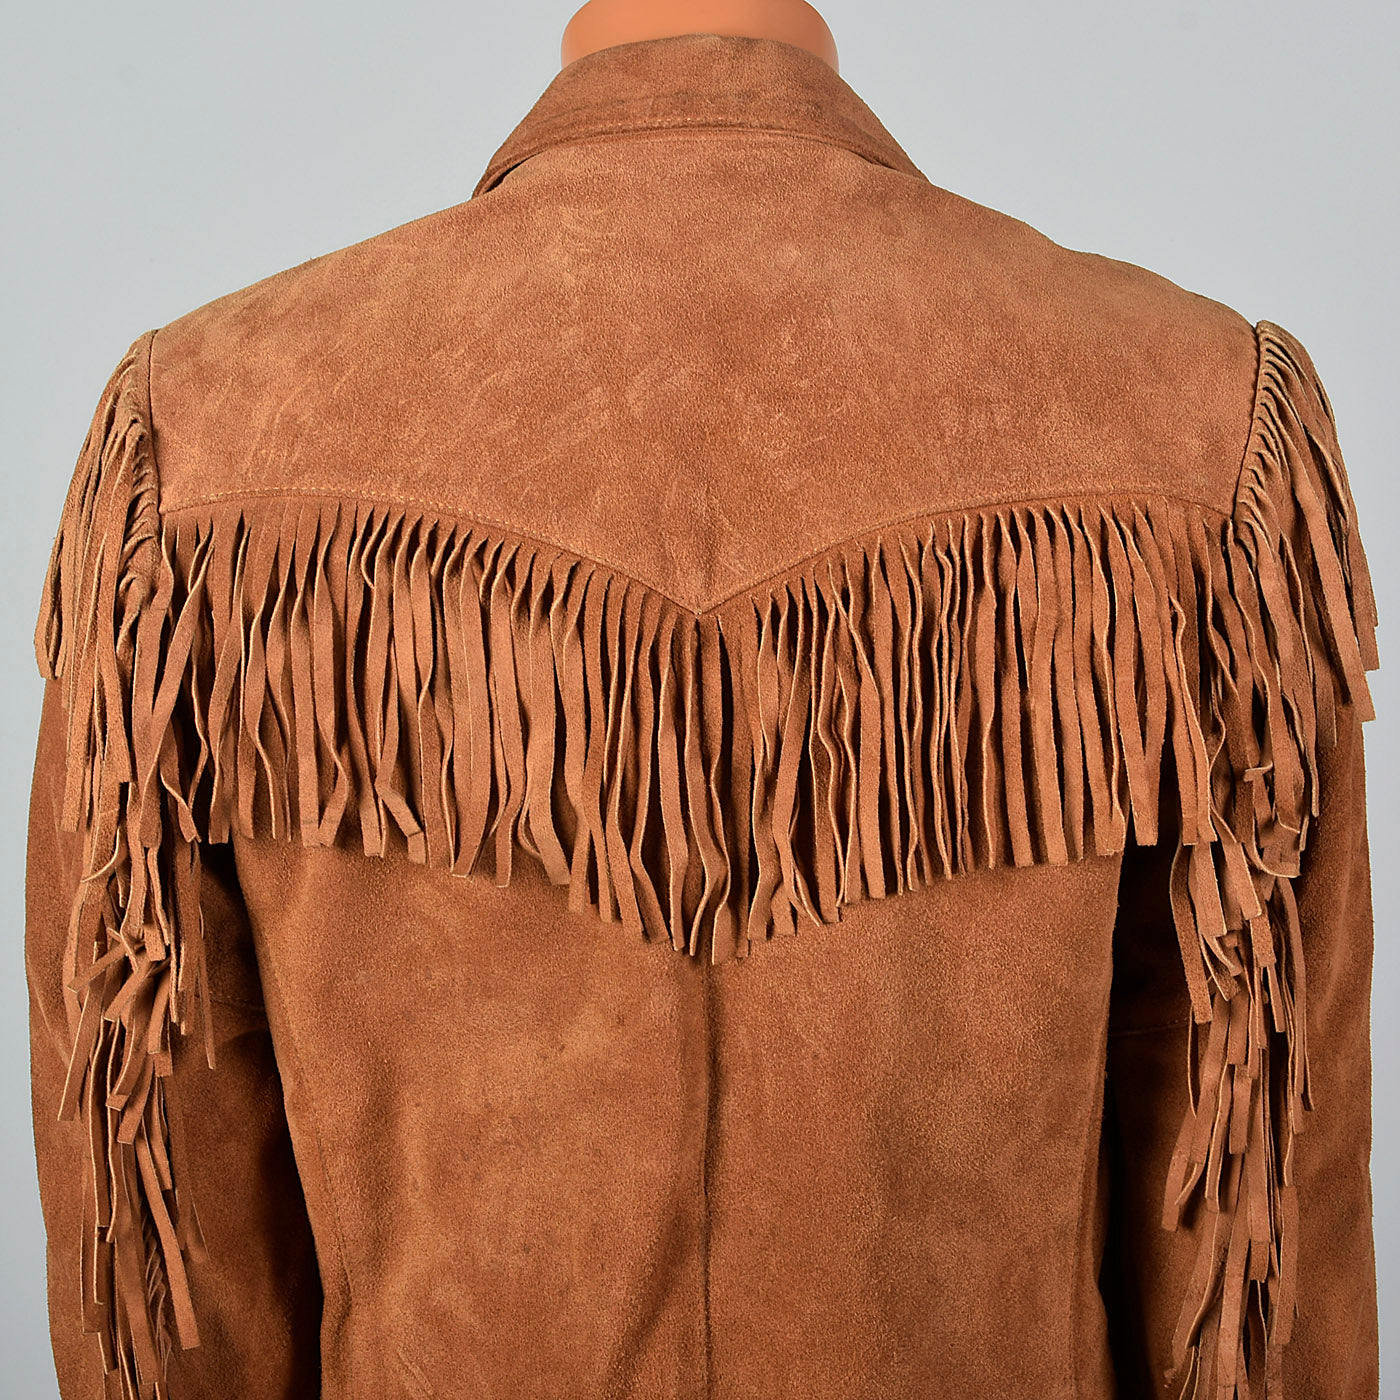 1970s Mens Brown Leather Bohemian Jacket with Fringe Trim